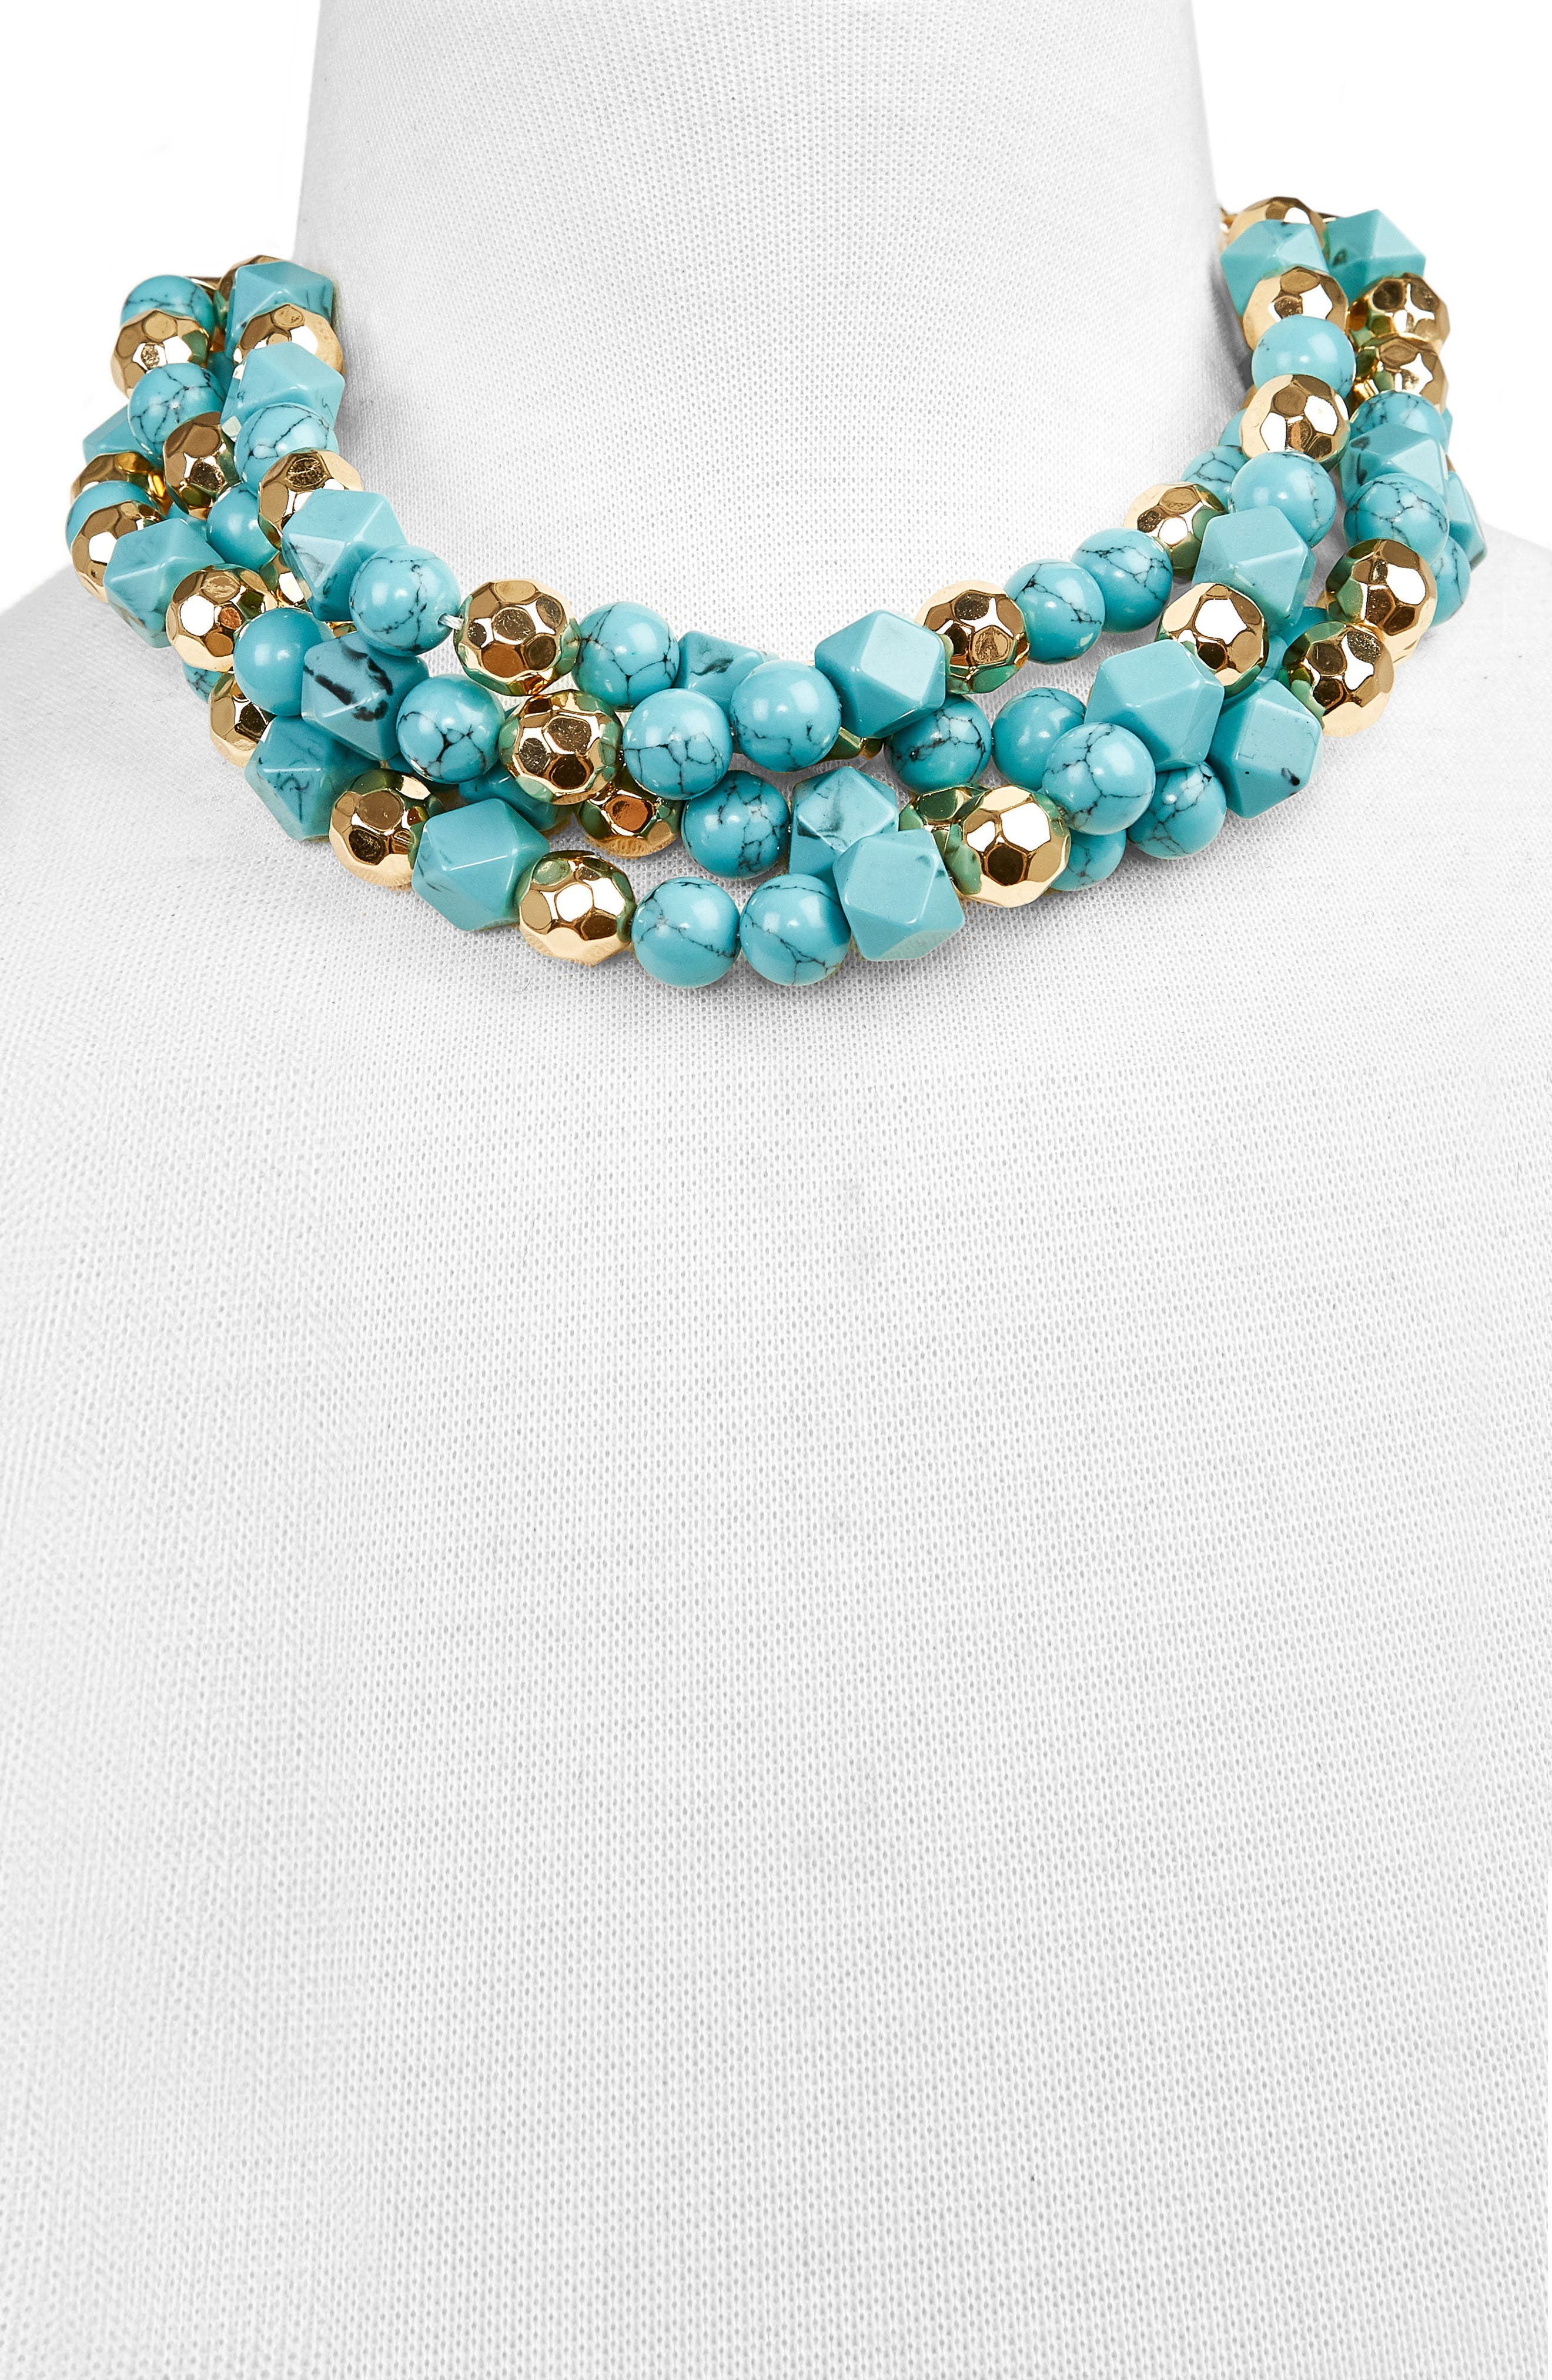 Cytherea Statement Necklace,                             Alternate thumbnail 2, color,